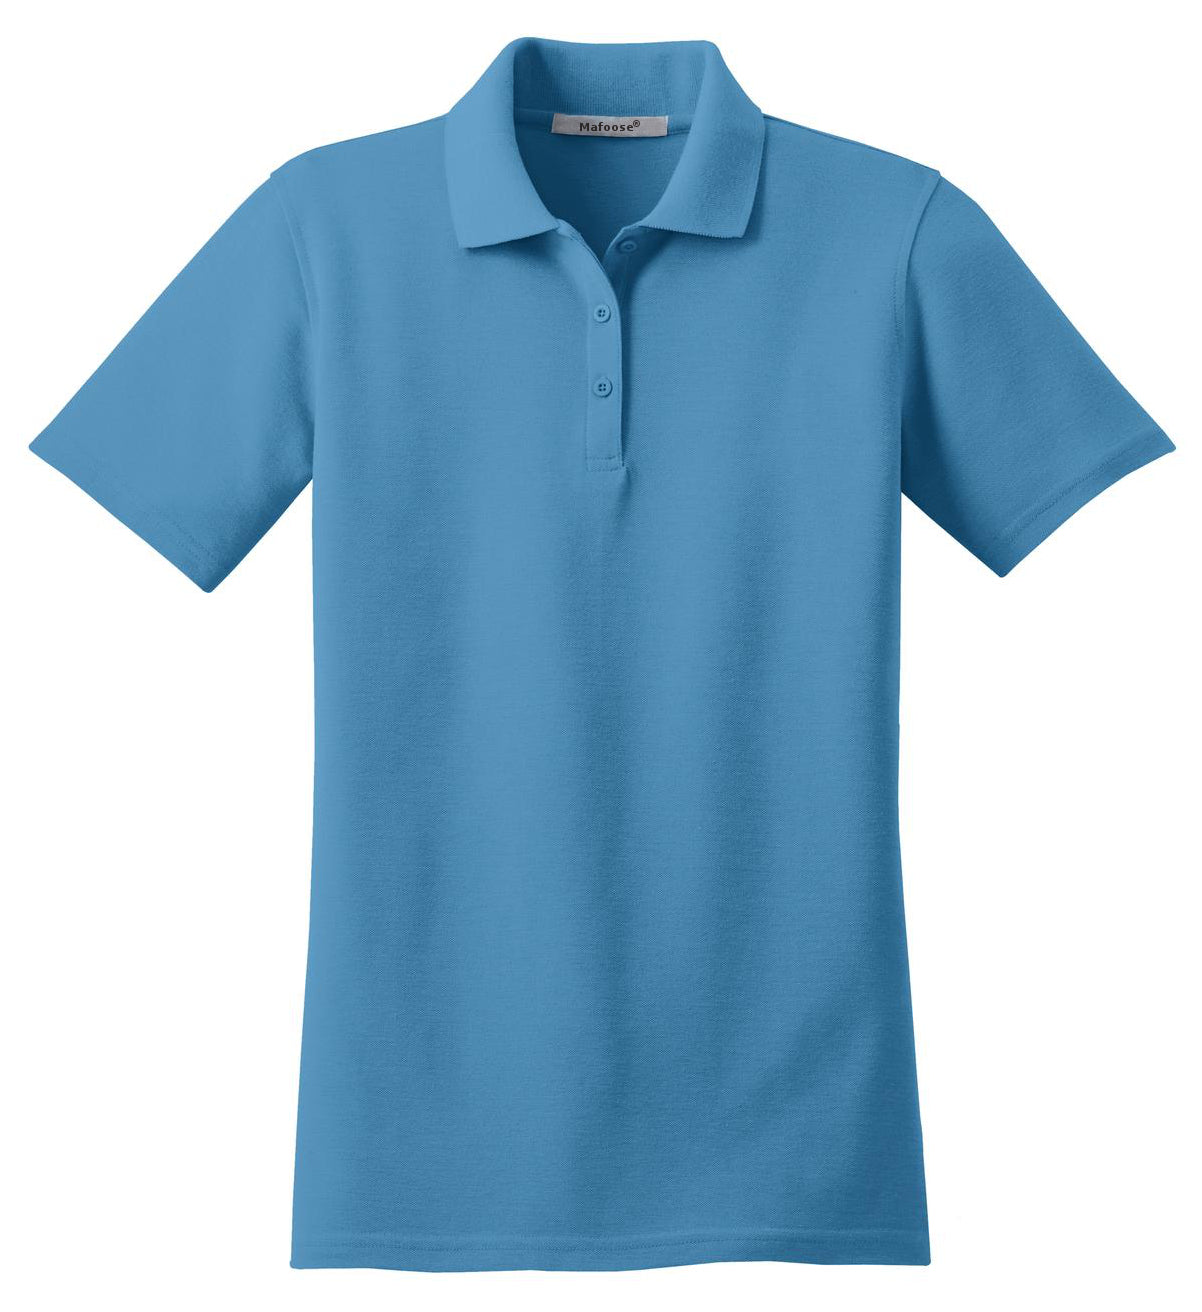 Mafoose Women's Stain Resistant Polo Shirt Celadon Blue-Front